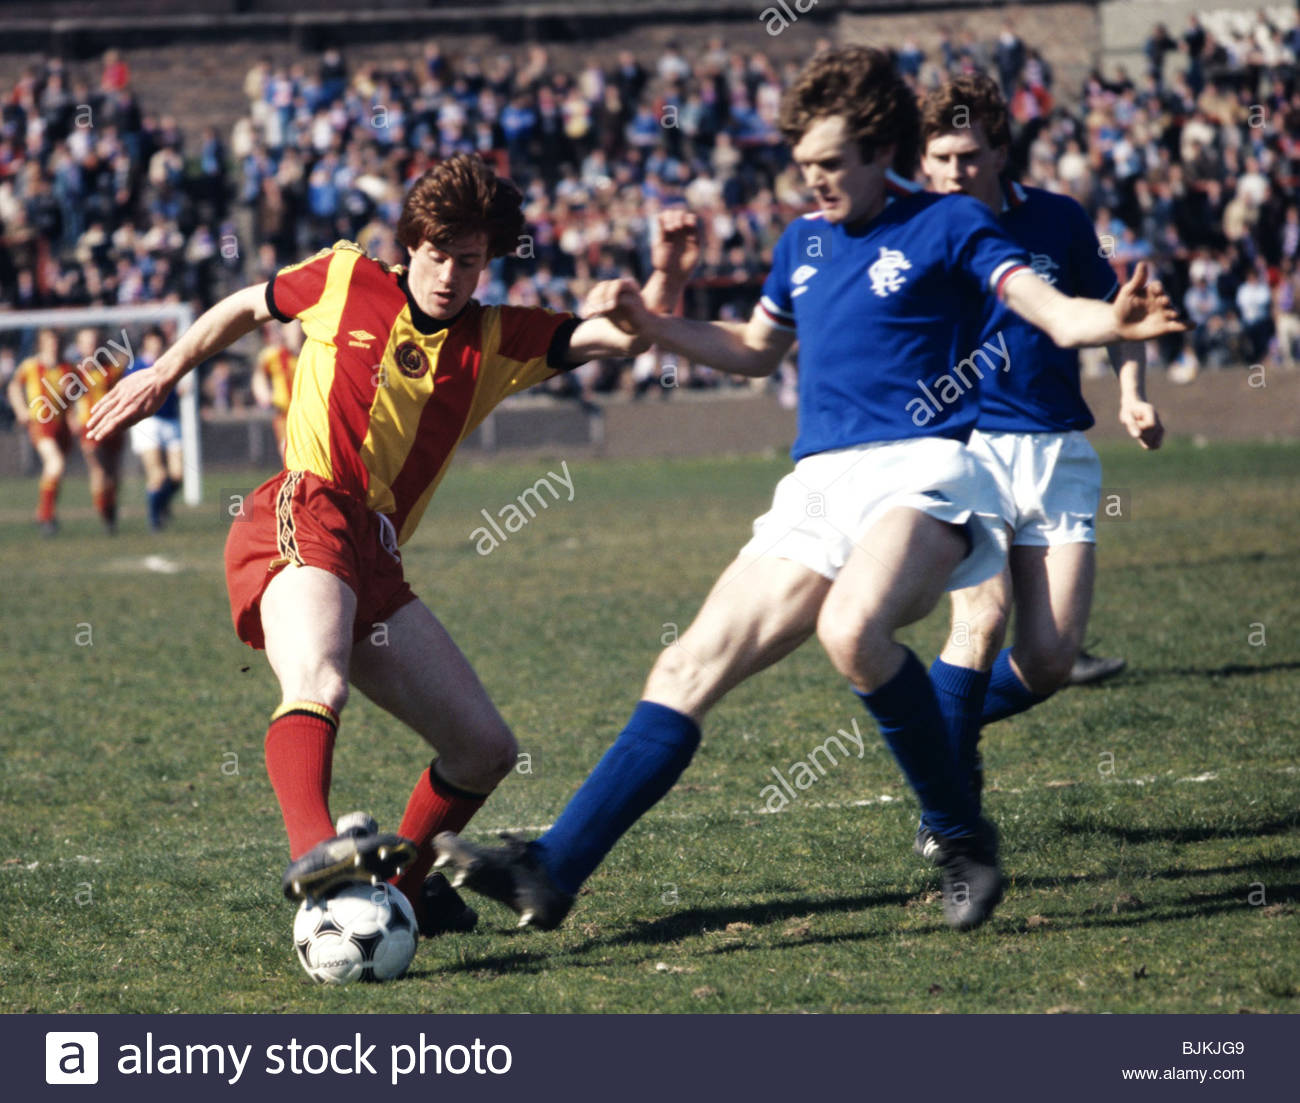 SEASON 1980/1981 PARTICK THISTLE v RANGERS FIRHILL - GLASGOW Partick's Jim Melrose (left) is challenged by Gregor - Stock Image